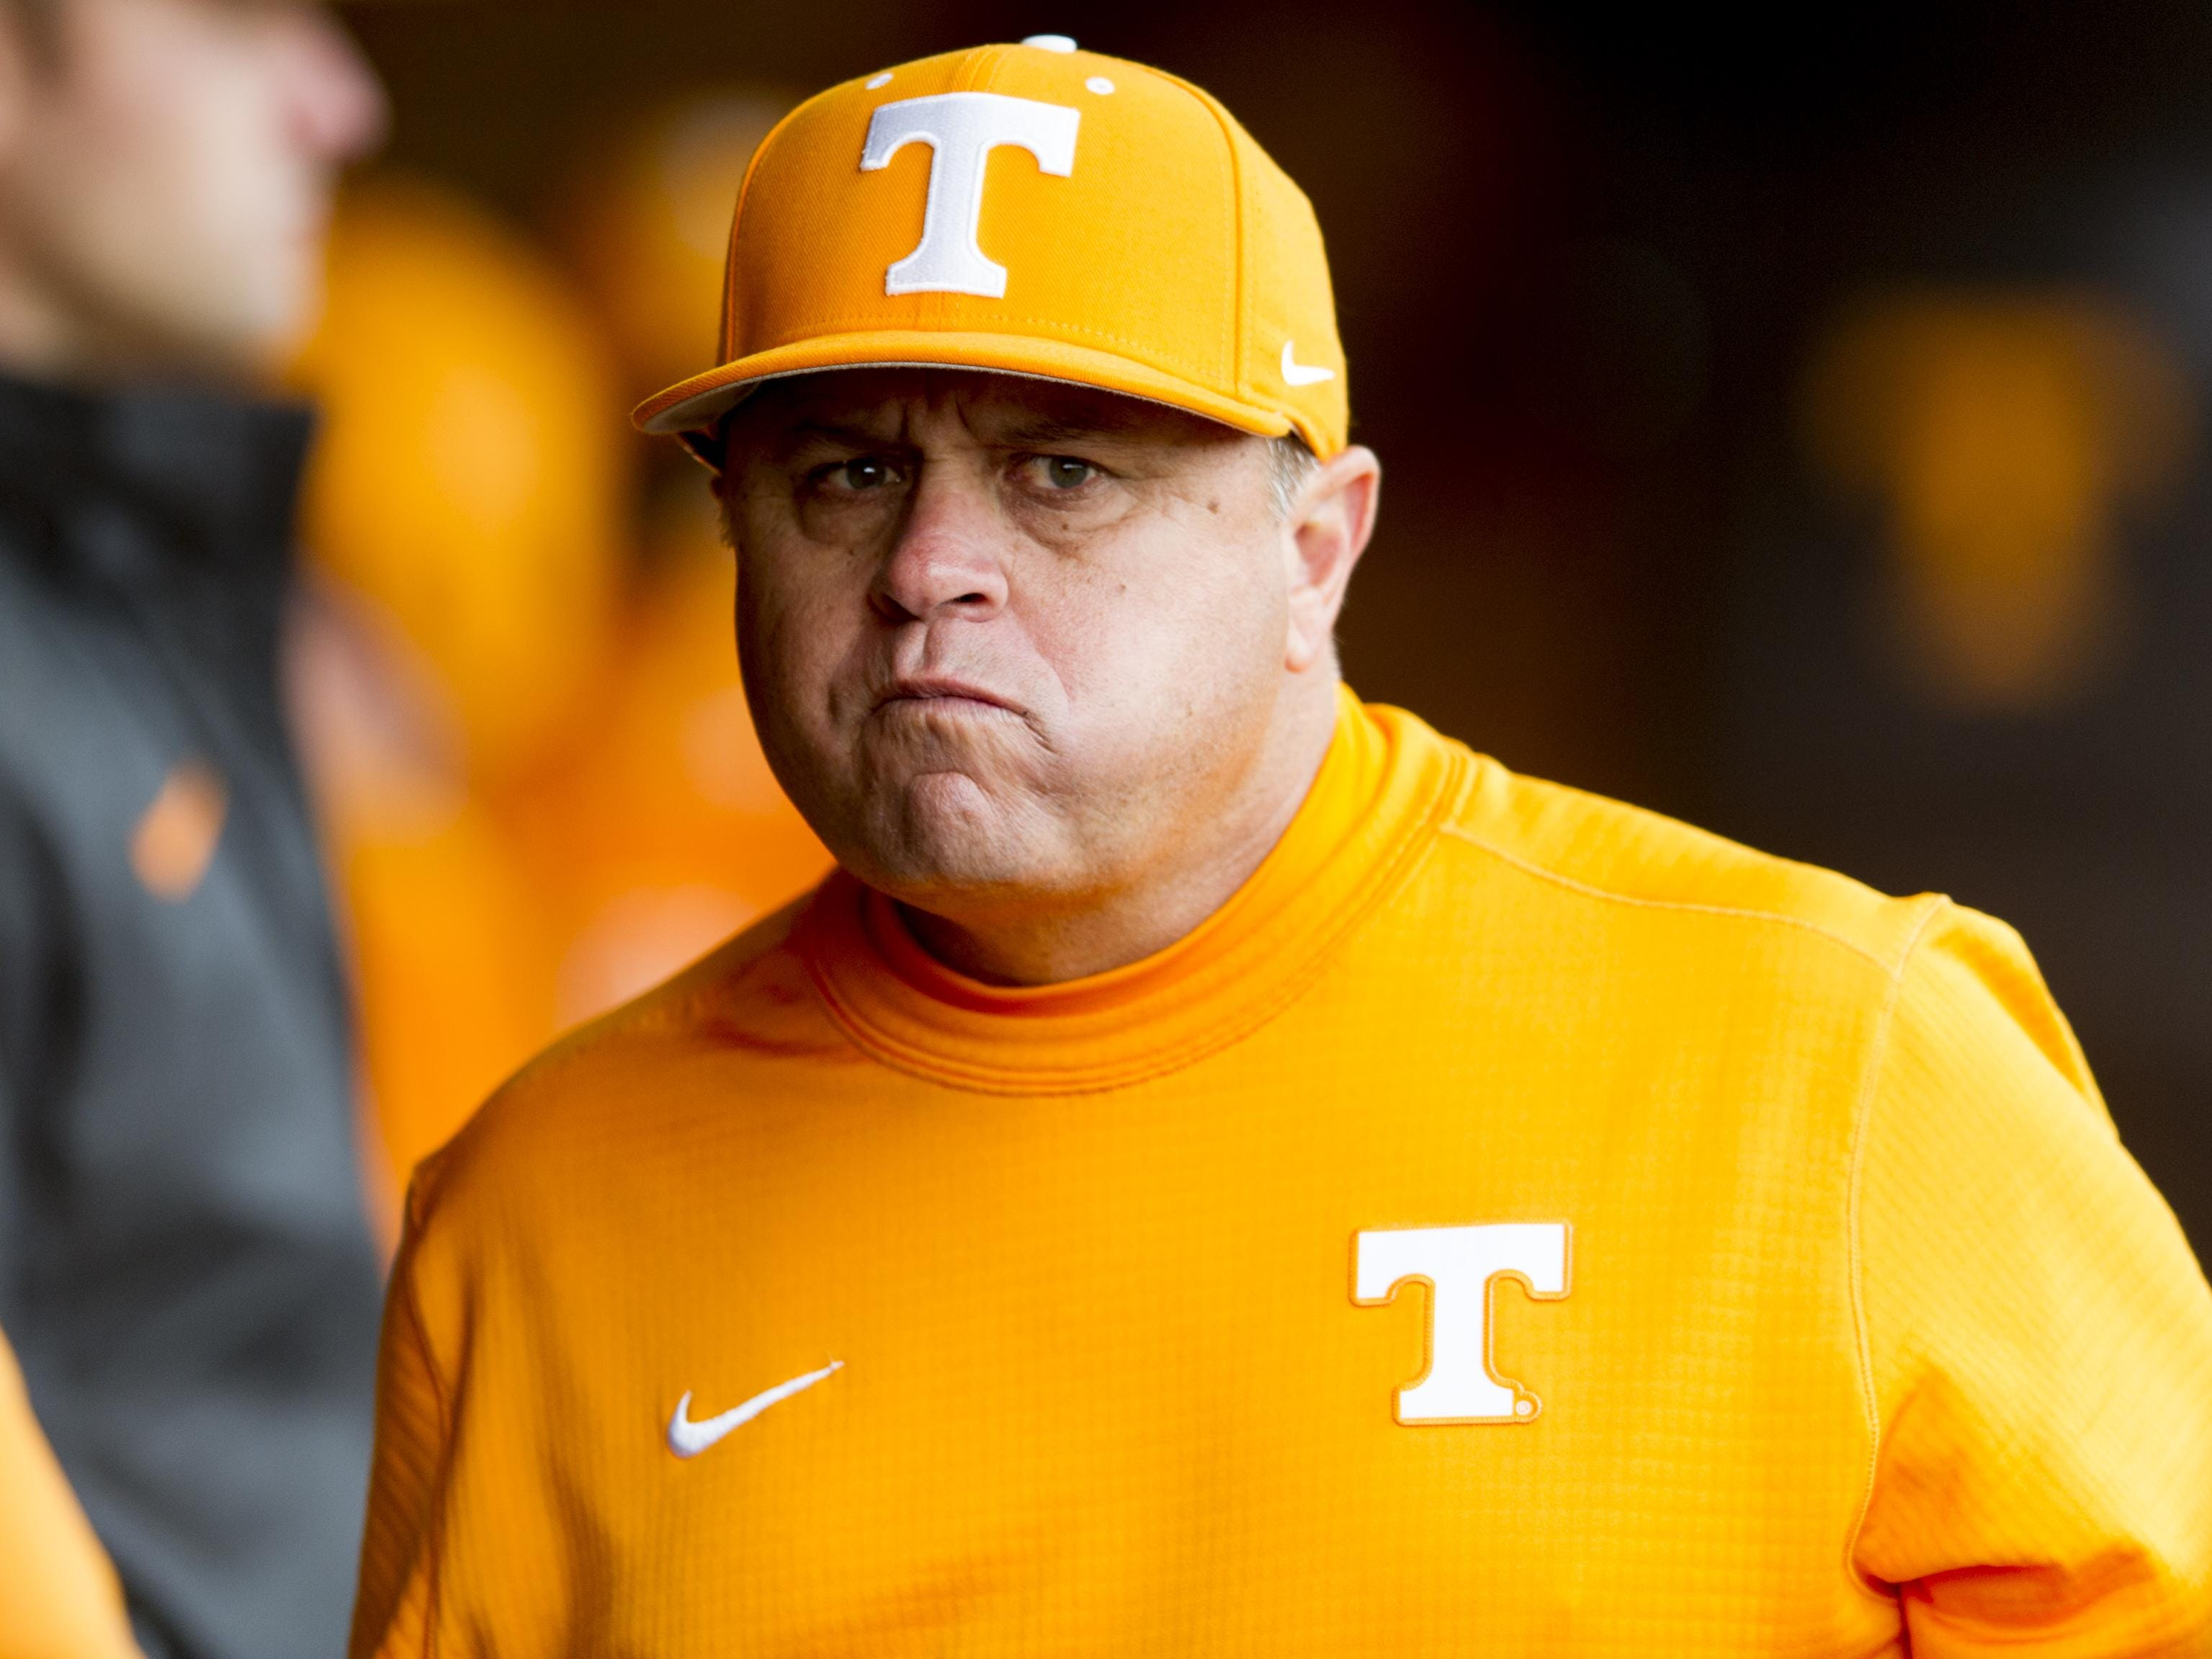 Tennessee Baseball Head Coach Dave Serrano during a game against University of Arkansas at Lindsey Nelson Stadium in Knoxville, Tennessee on Saturday, May 6, 2017; Knoxville, TN; Mandatory Credit: Calvin Mattheis/Knoxville News Sentinel via USA TODAY NETWORK